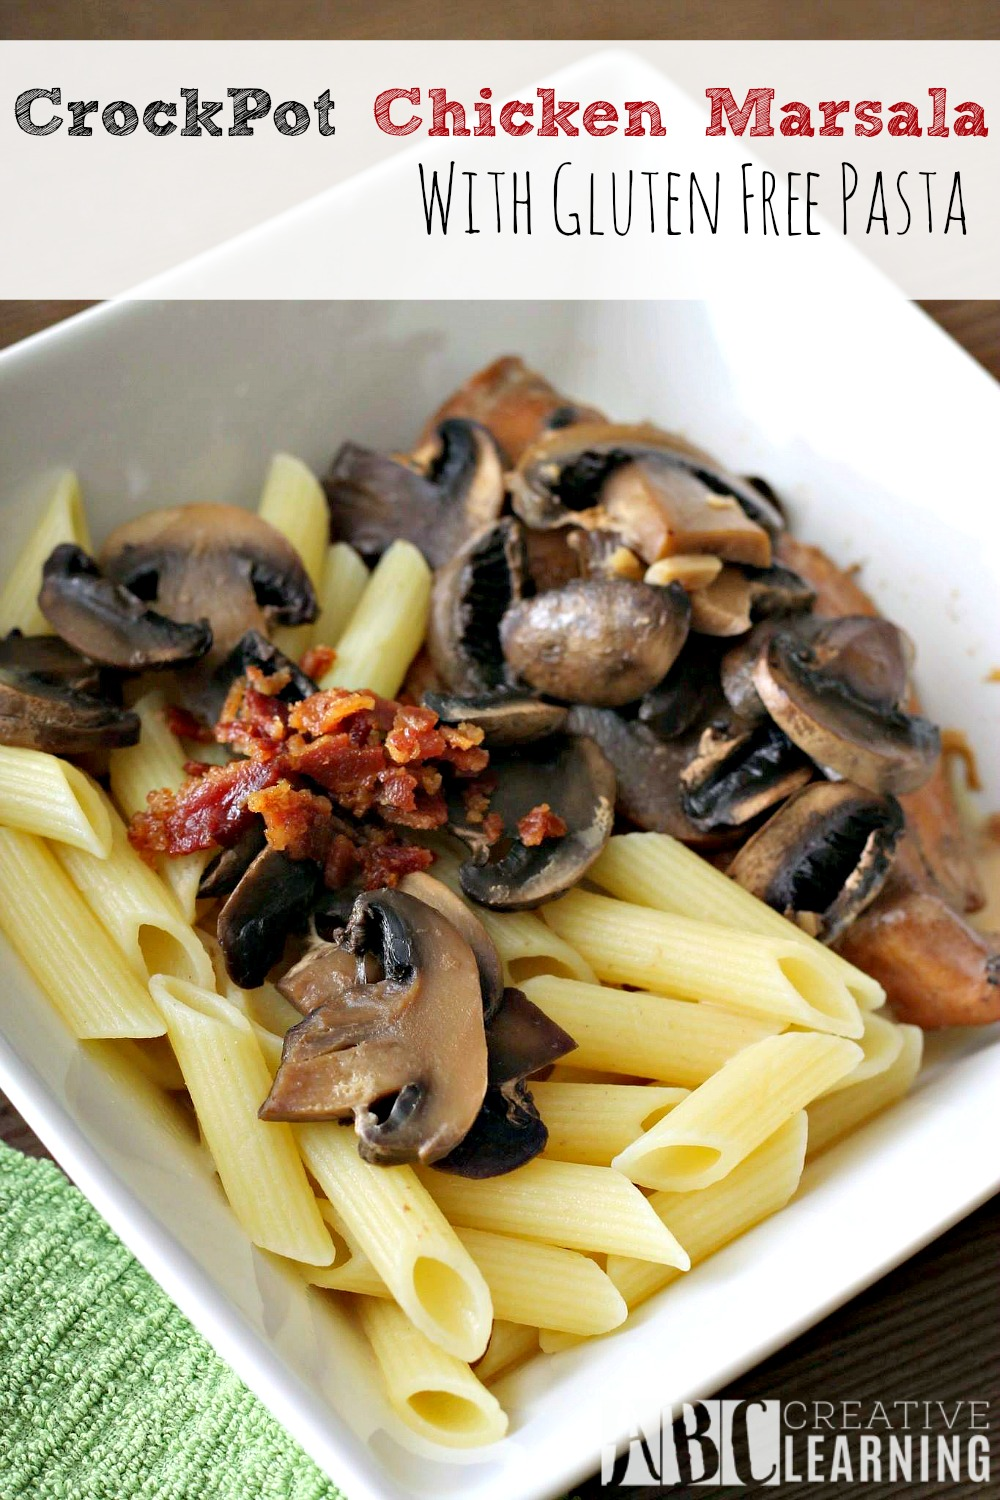 CrockPot Chicken Marsala with Gluten Free Pasta